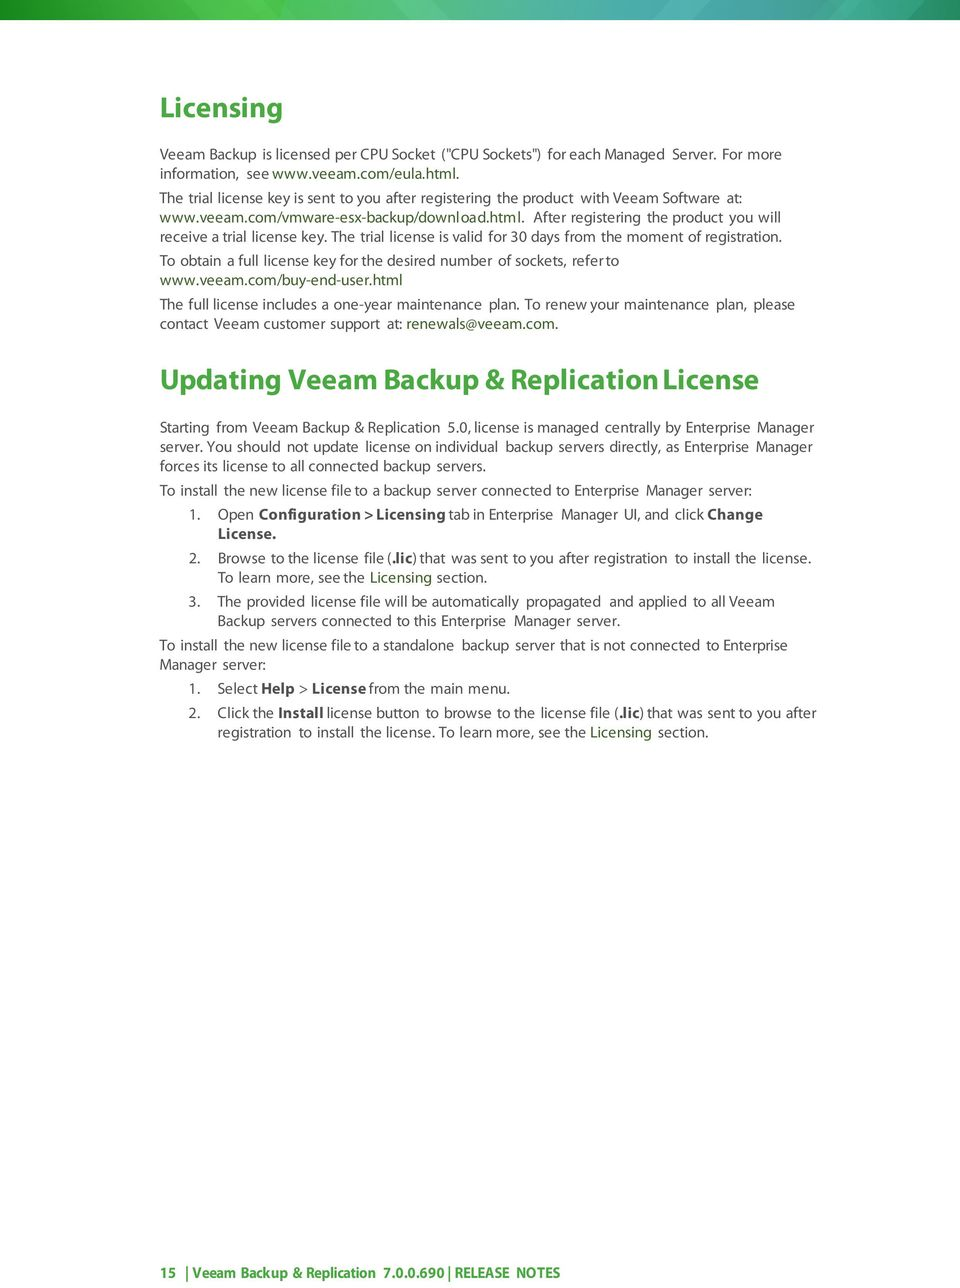 veeam backup and replication crack